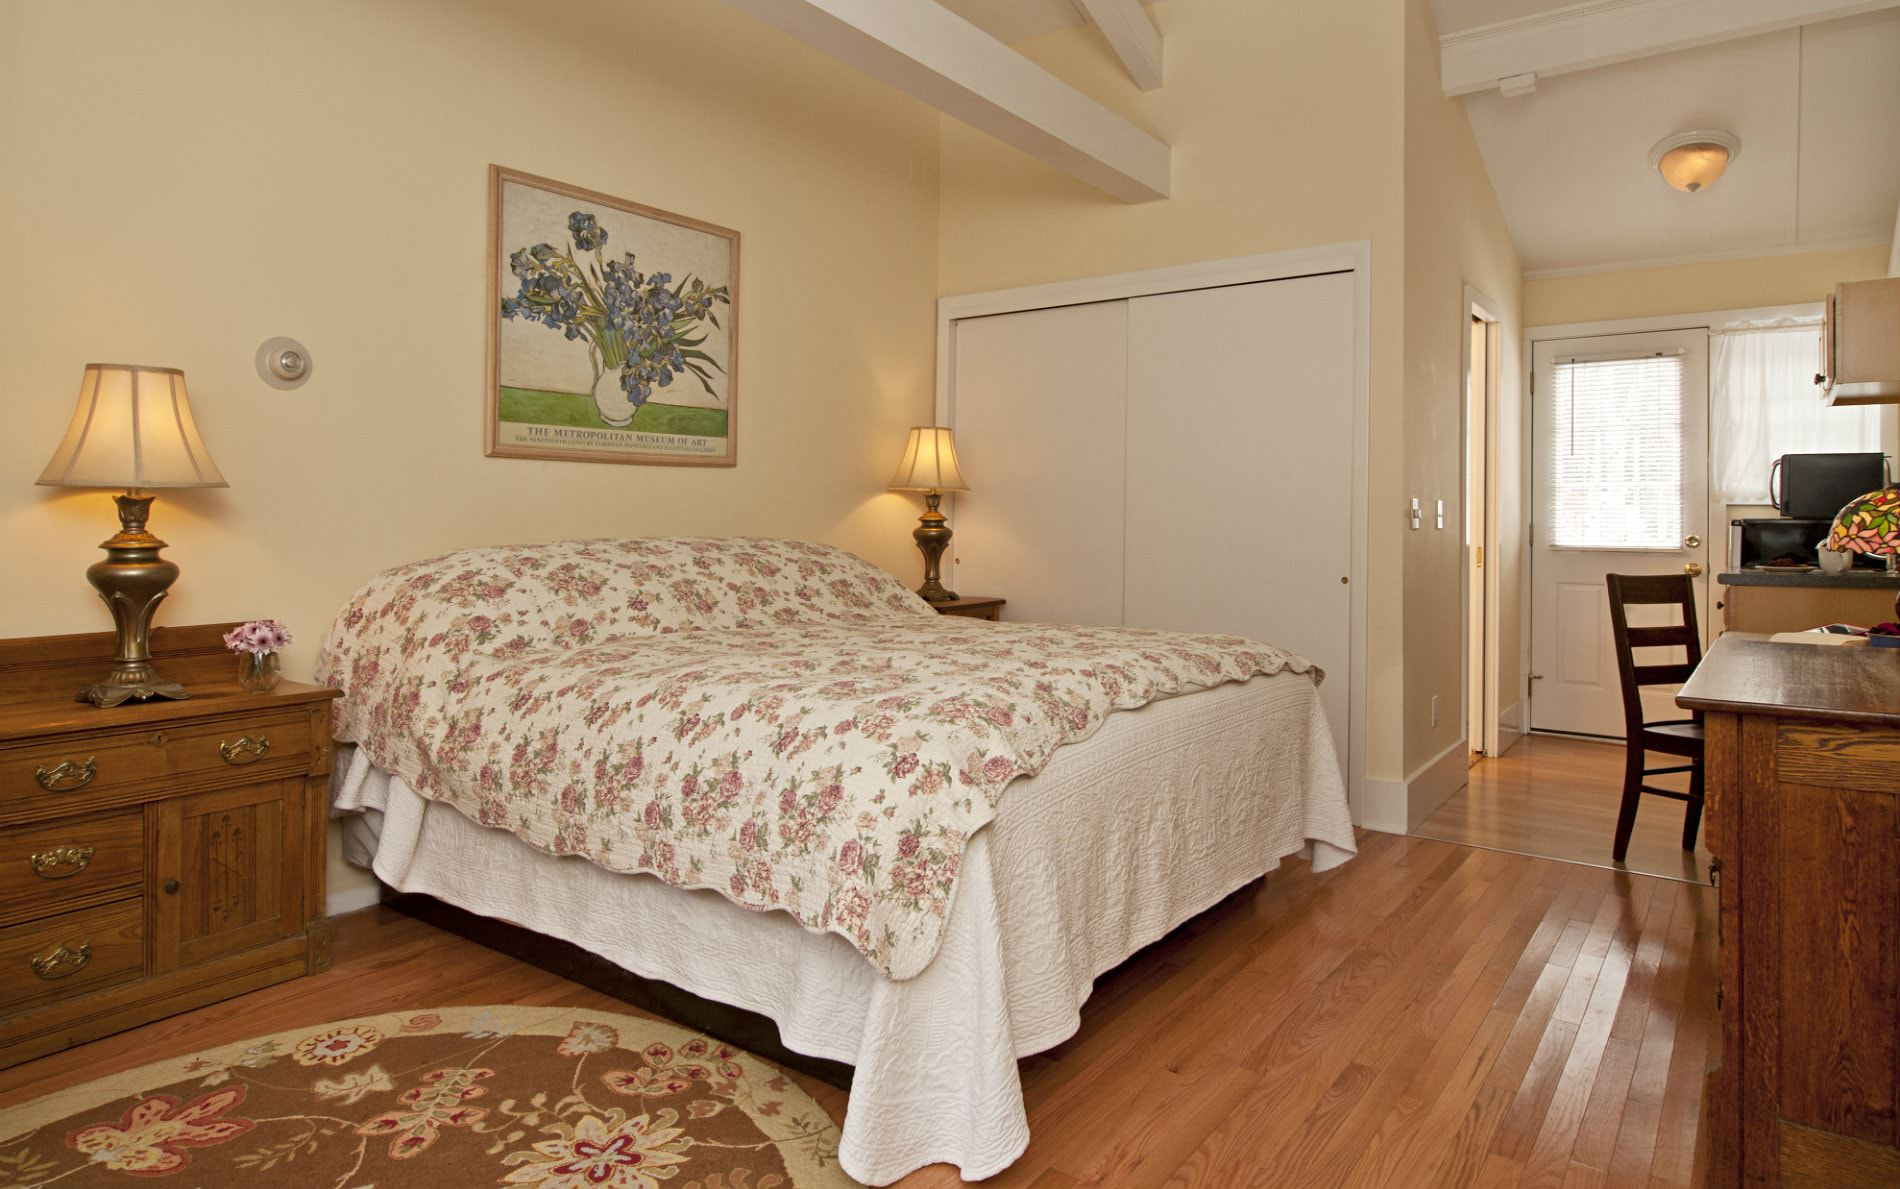 Beige room with dark carpet, white covered bed, dresser with mirror, desk and chair, and side chair with round table